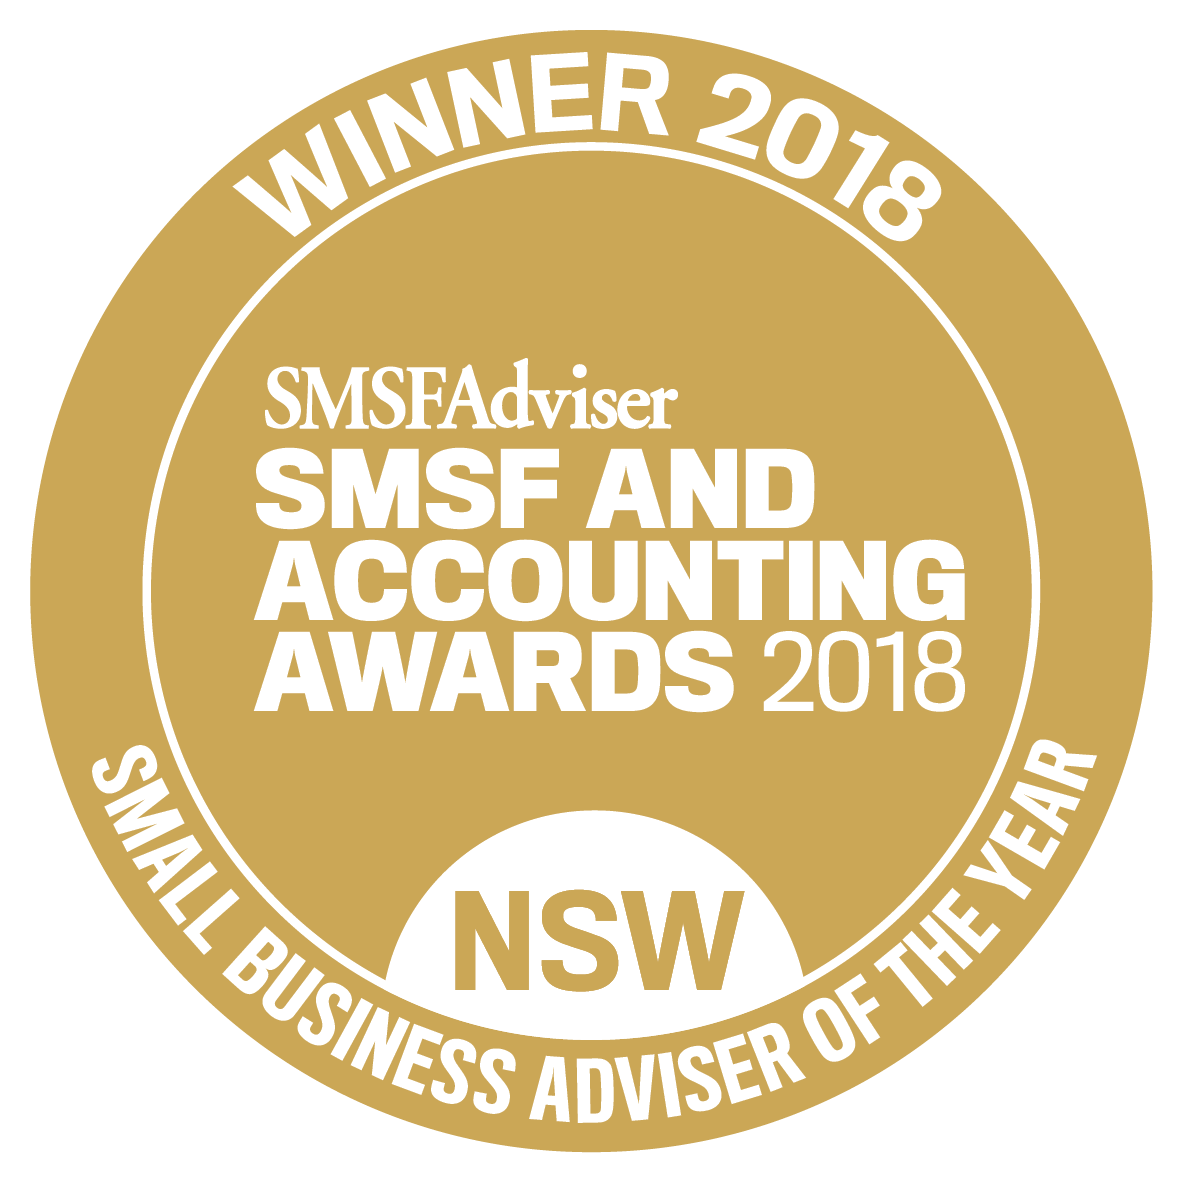 2018 Small Business Adviser of the Year